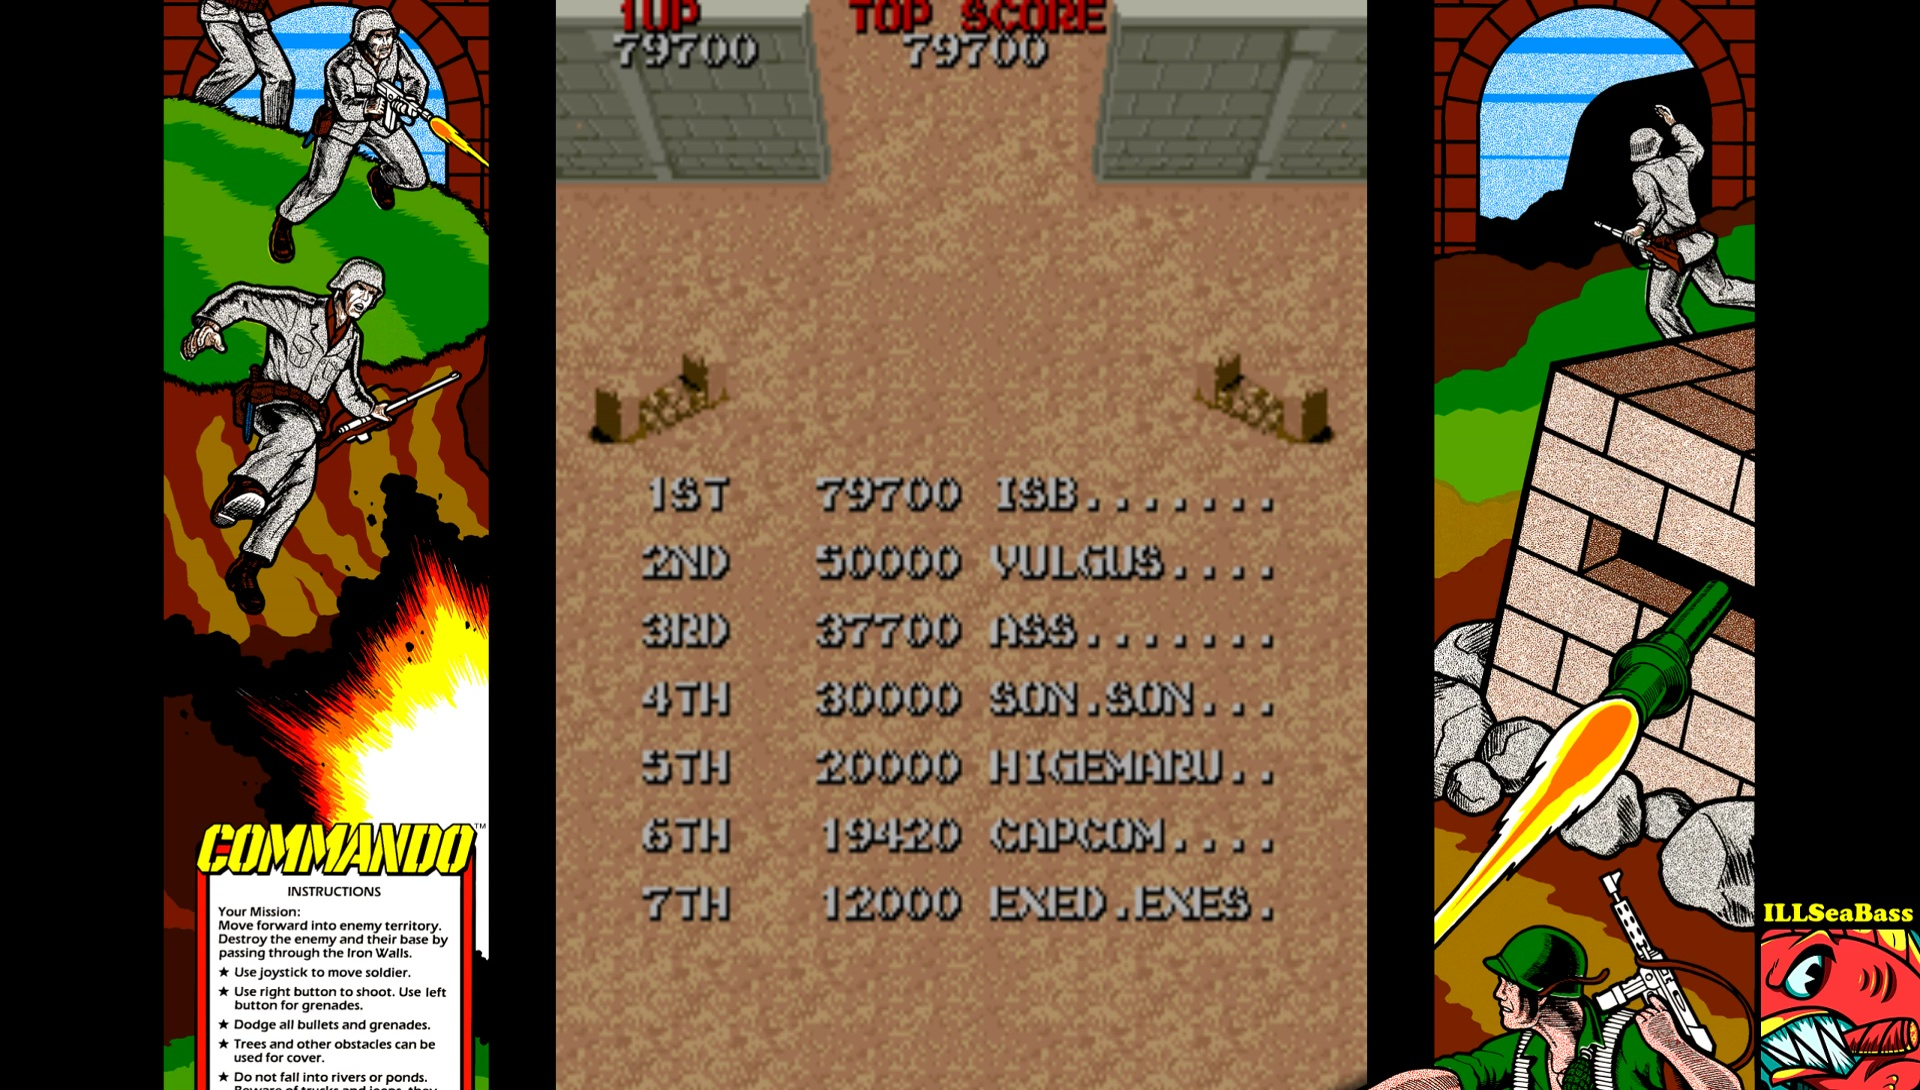 ILLSeaBass: Commando (Arcade Emulated / M.A.M.E.) 79,700 points on 2017-05-22 11:59:35